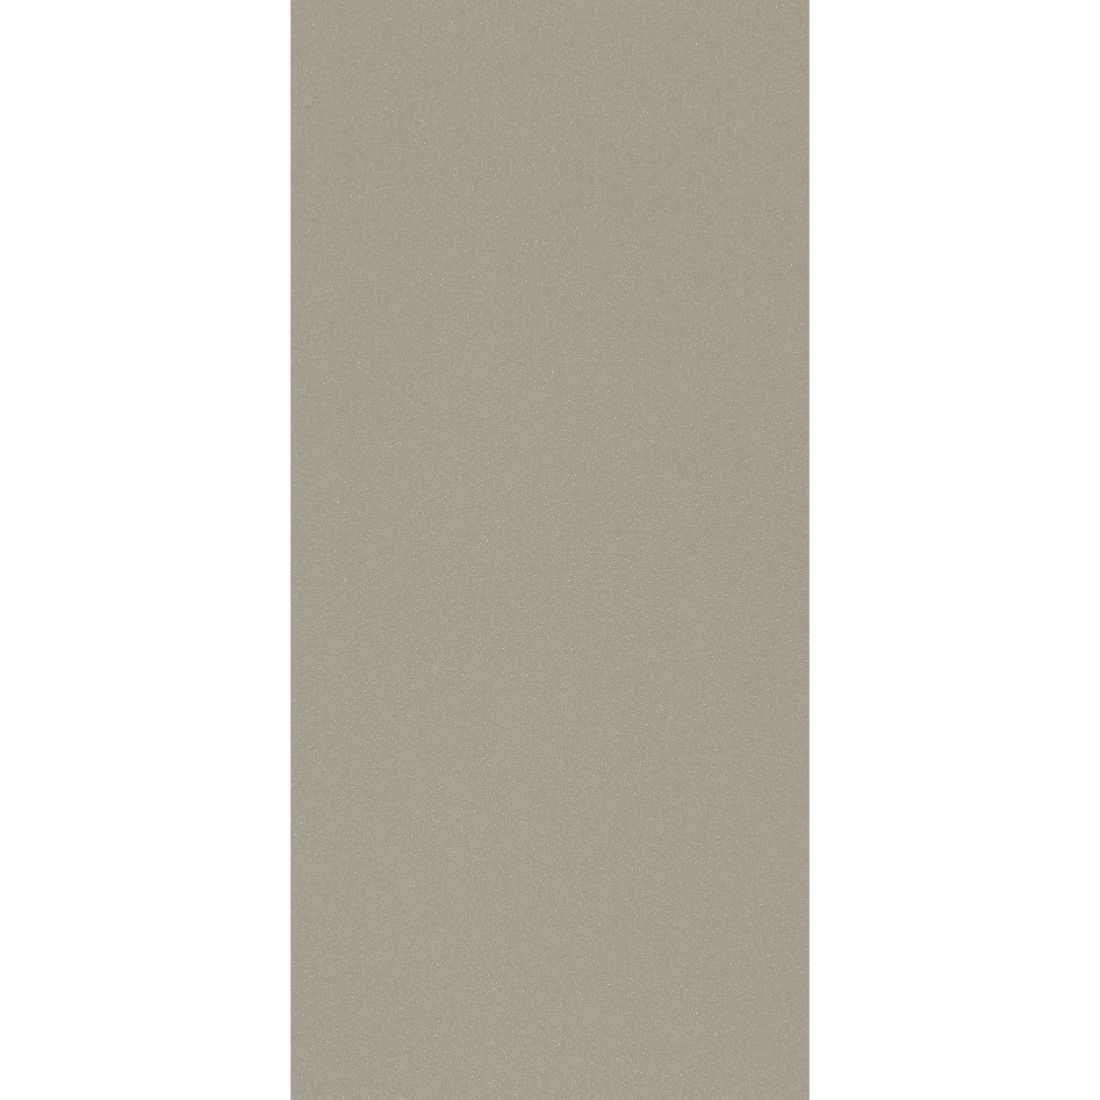 Specialty Wall Lining Panel Sandy Bay 2700 x 1200 x 4.5mm